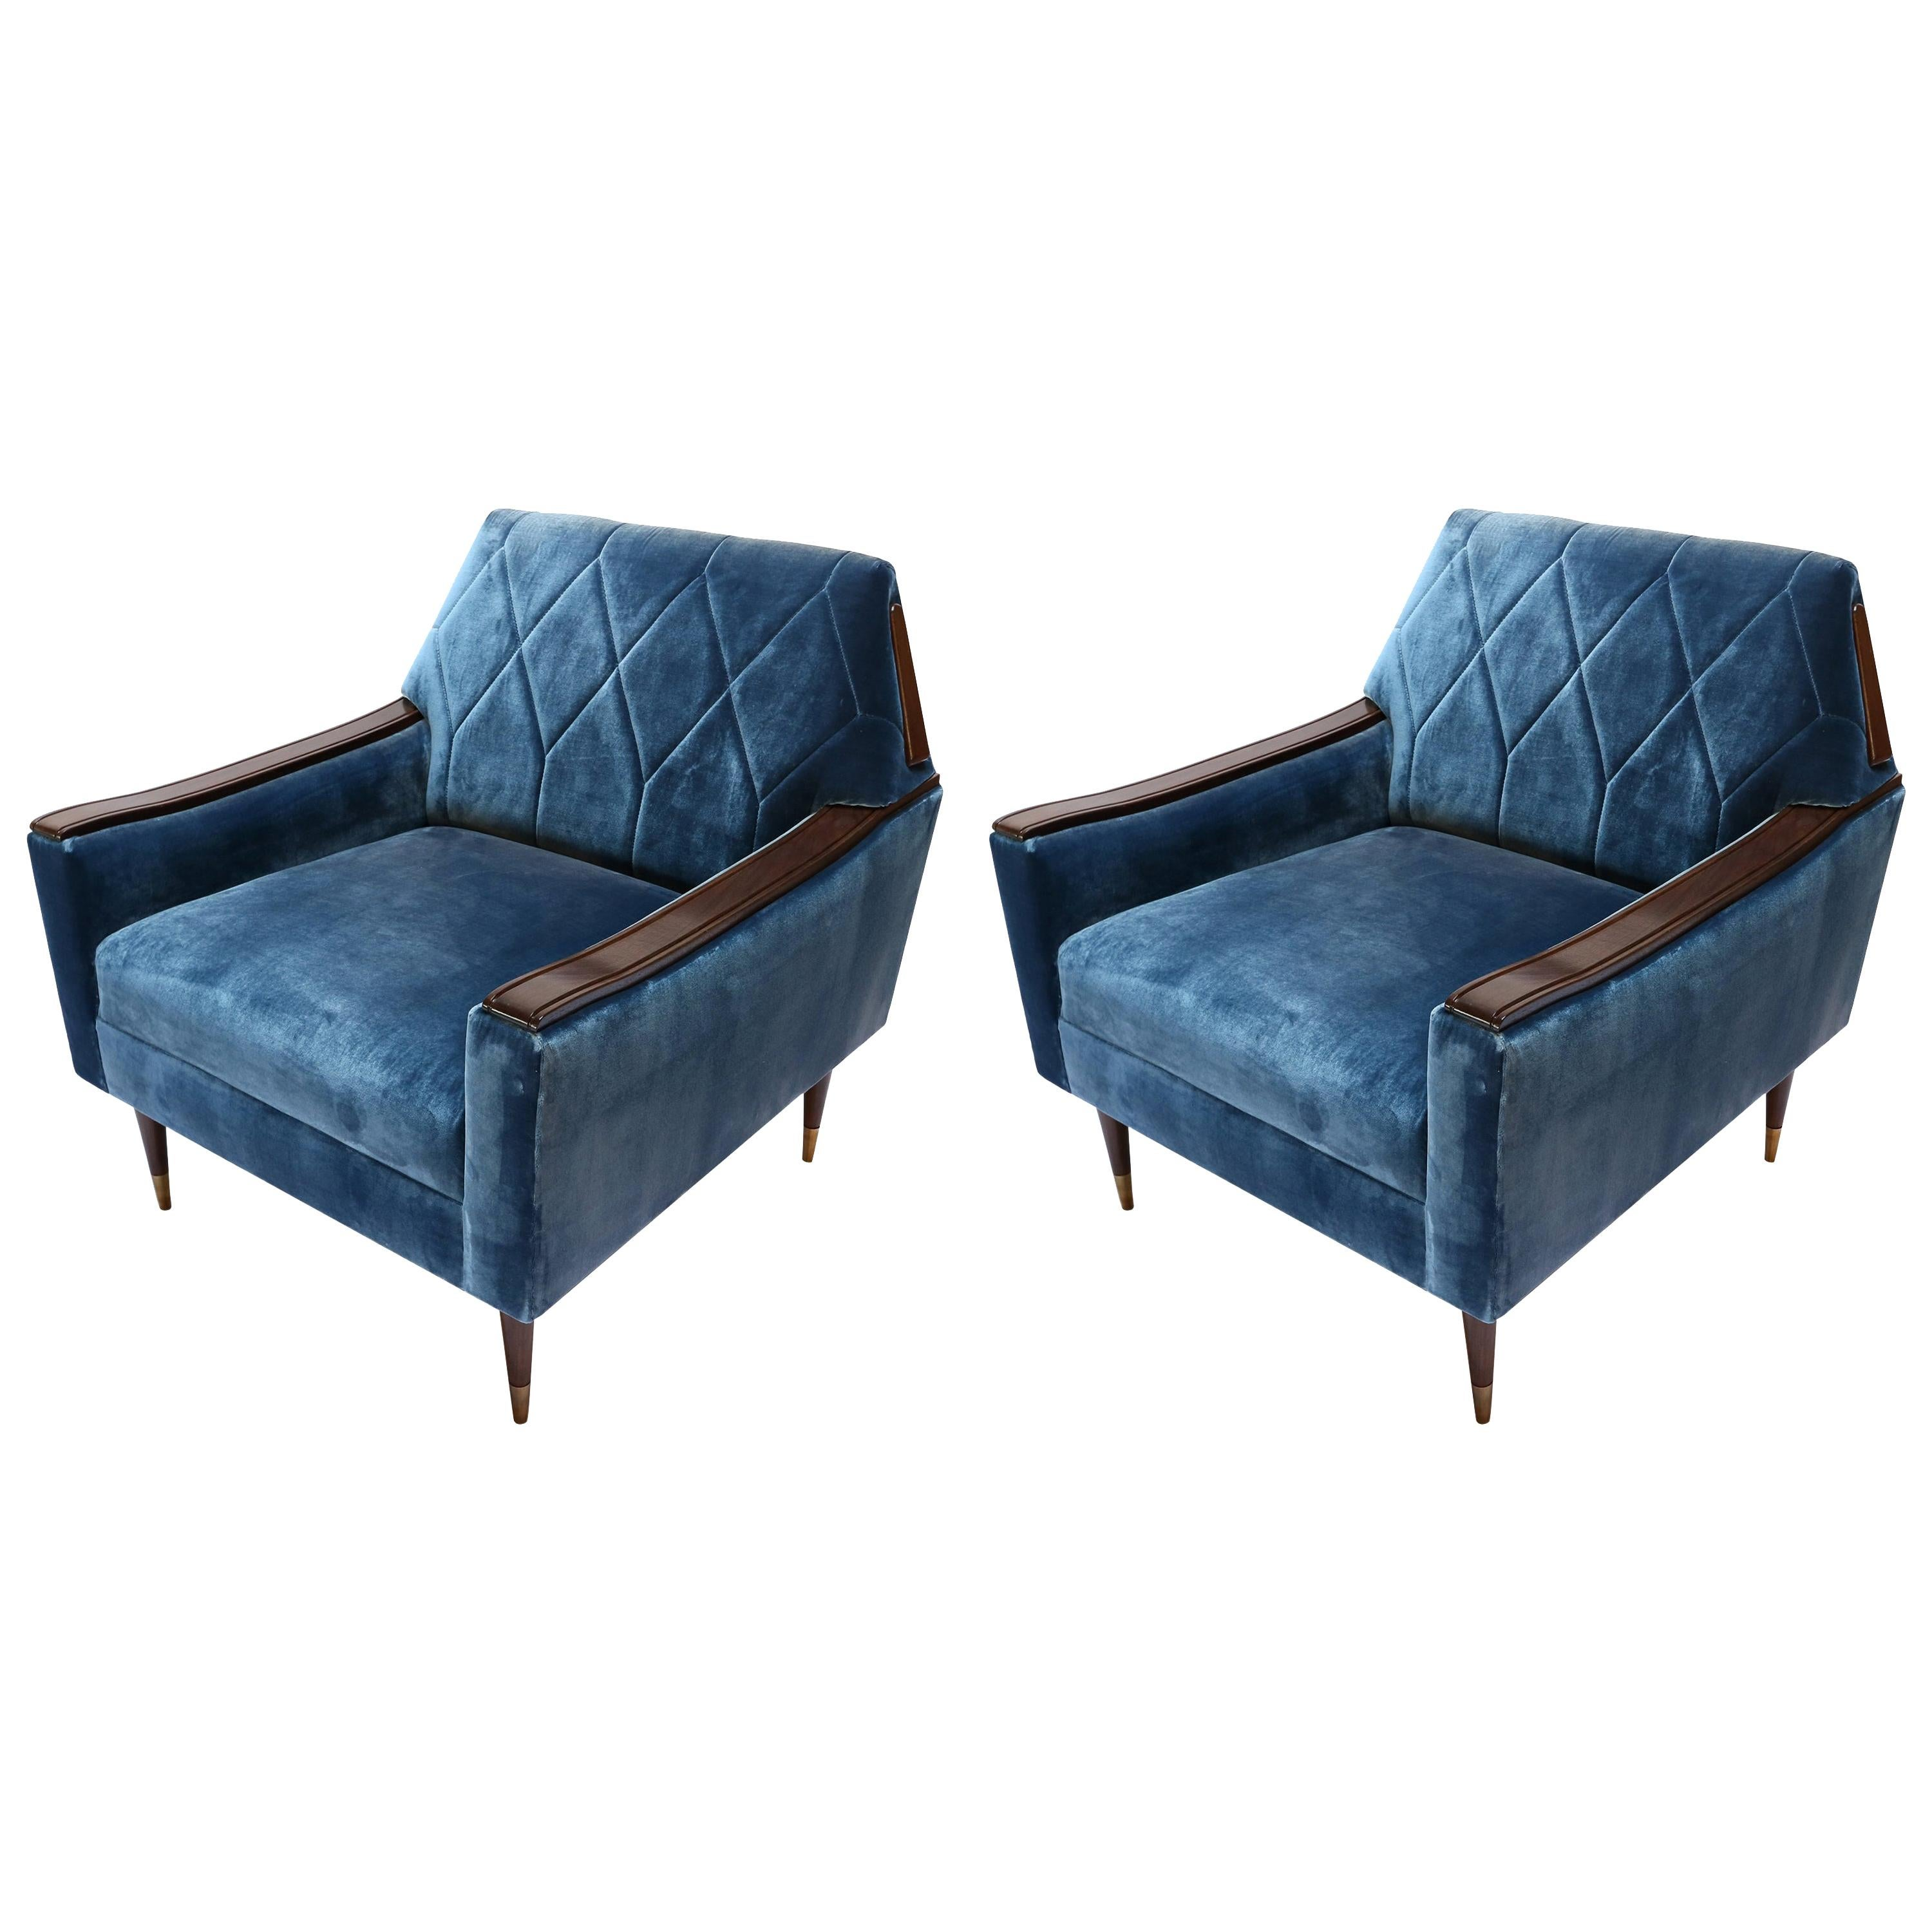 Pair of Custom 1960s Style Wood and Silk Velvet Armchairs by Adesso Imports